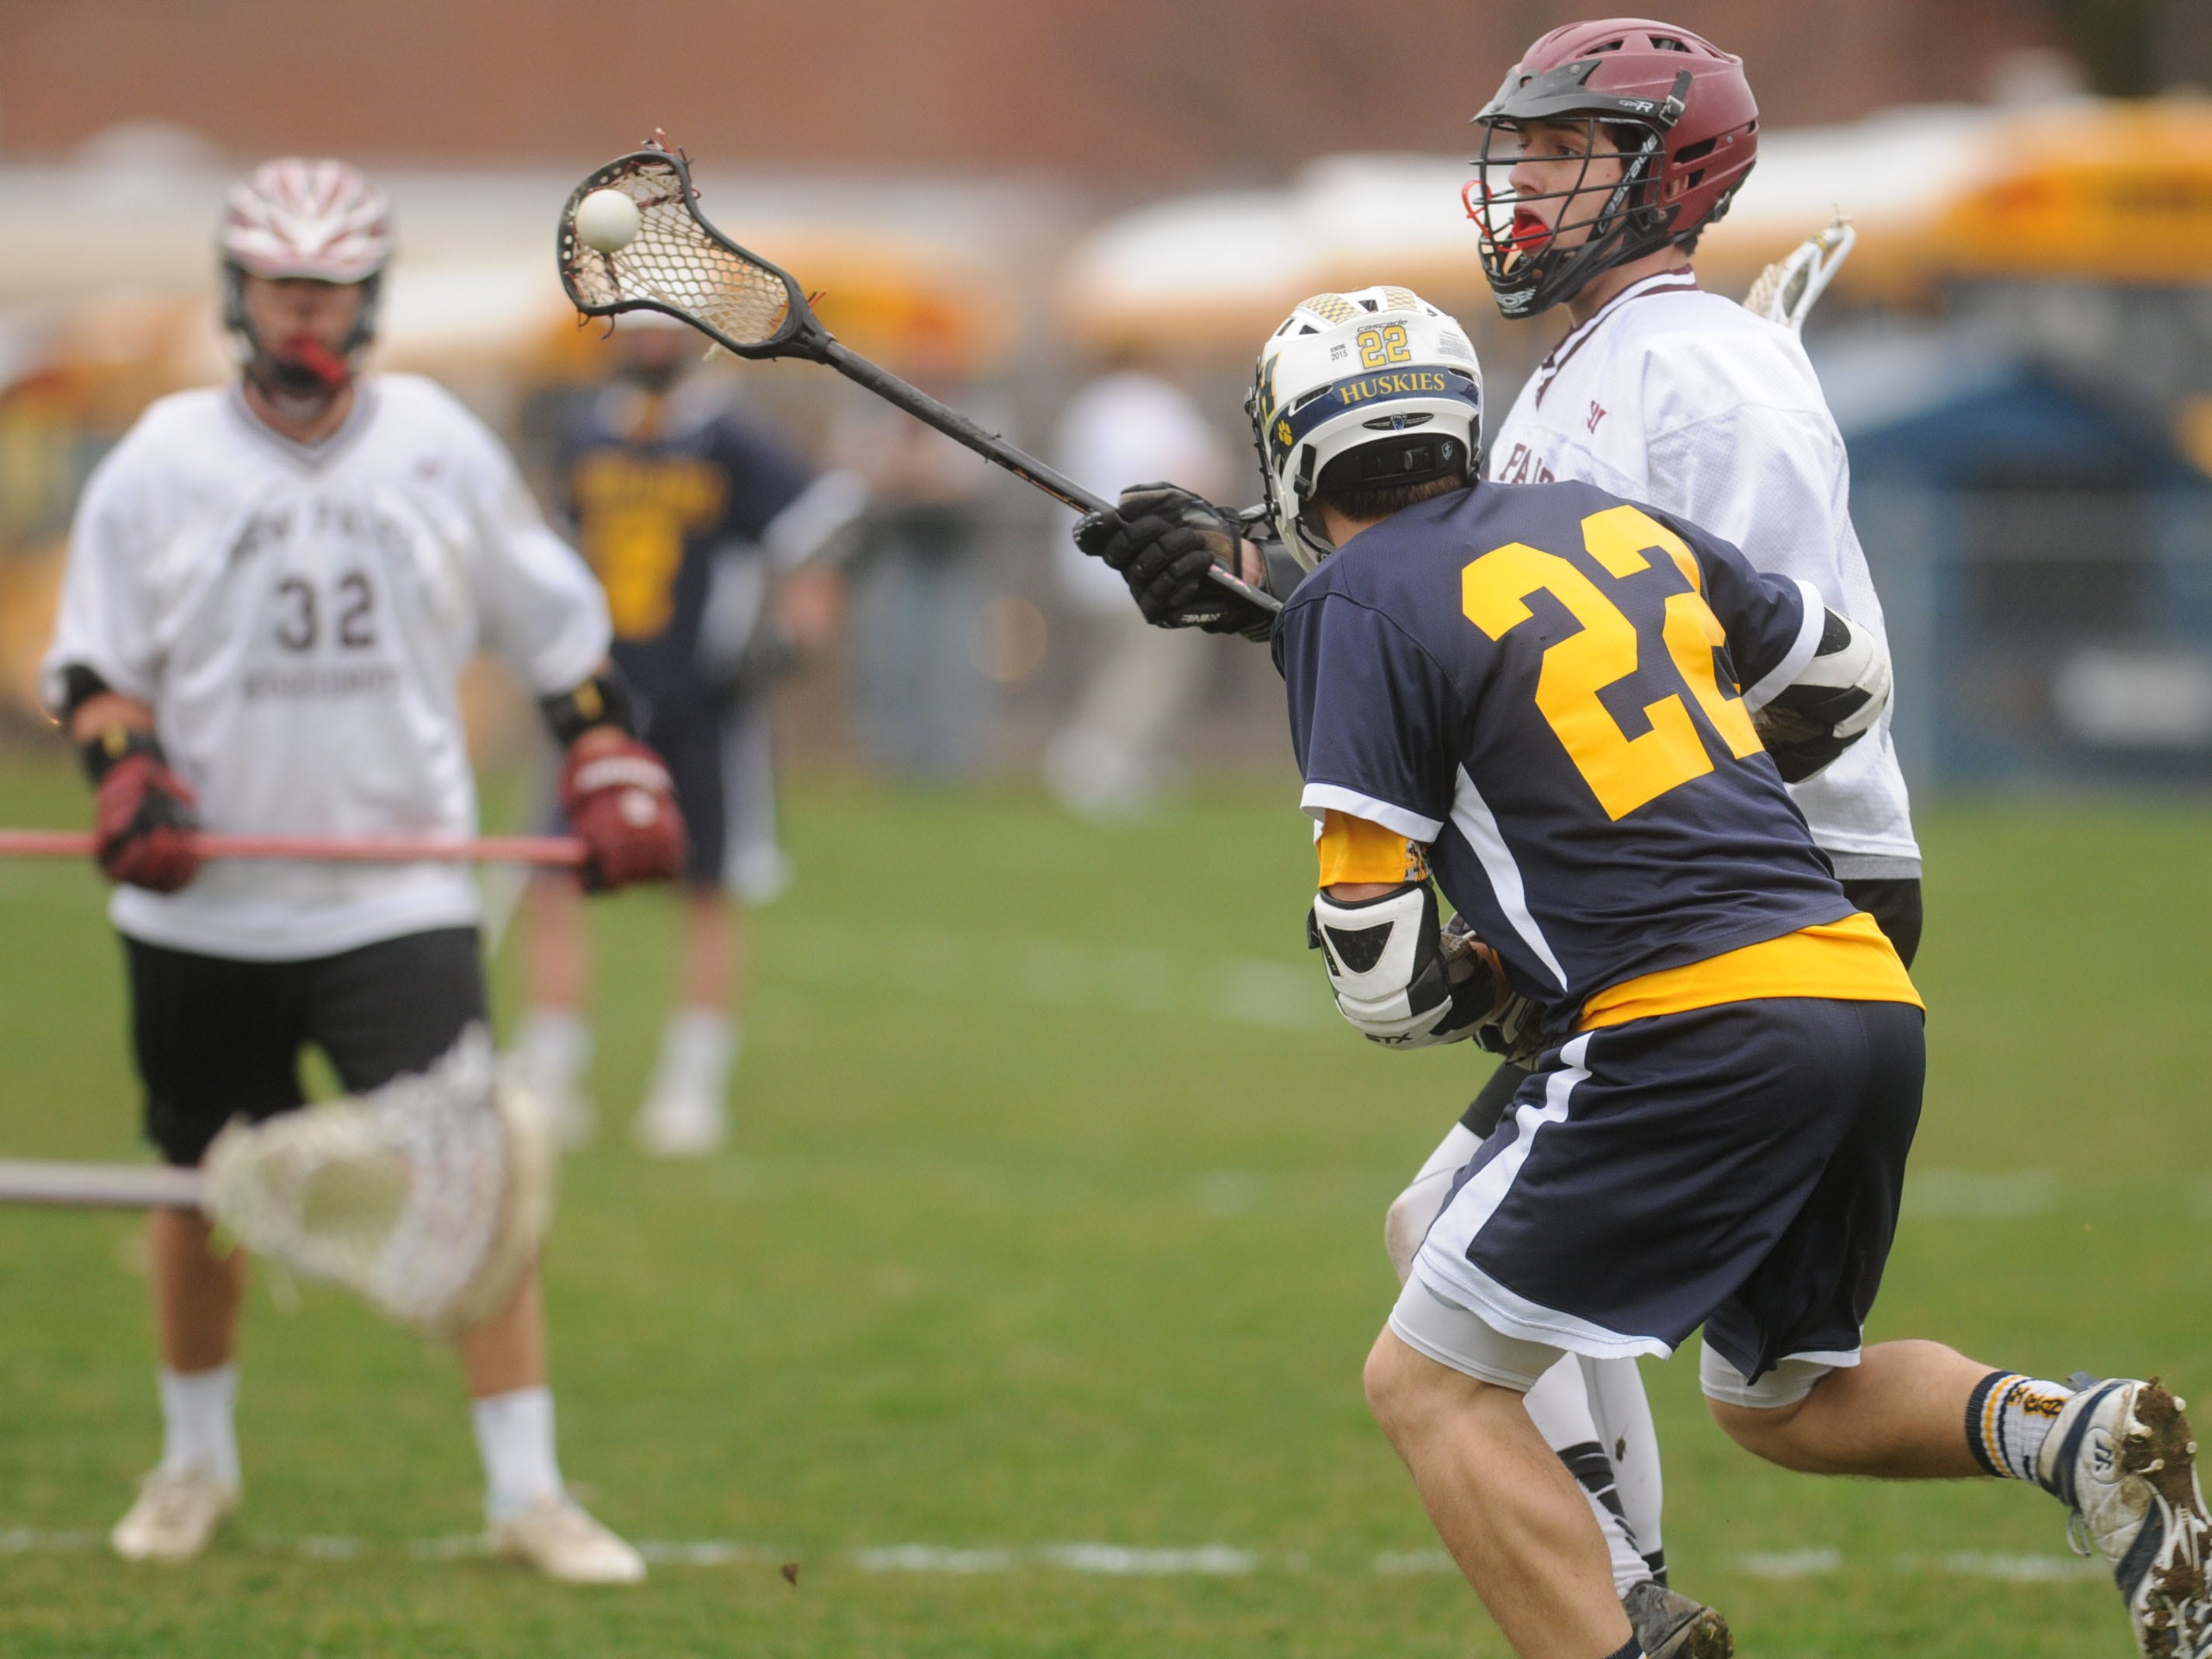 New Paltz's Avery Sells, top, passes the ball to a teammate while Highland's Jason Chlus, bottom, defends.